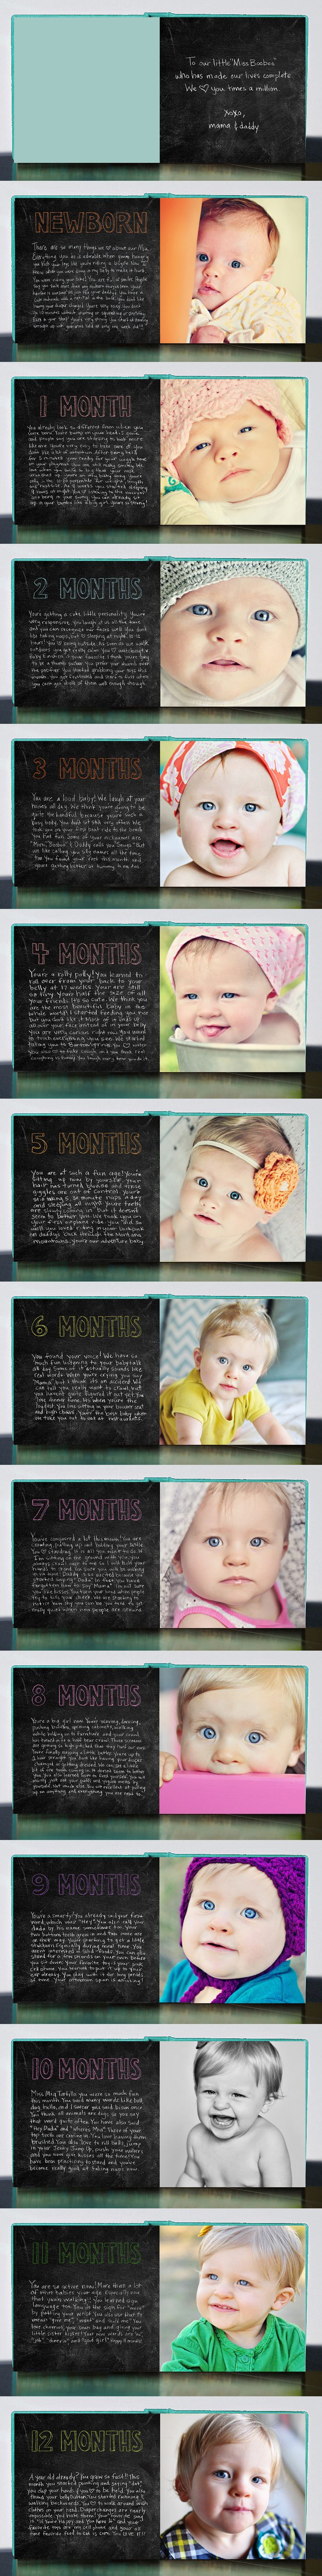 Really cool baby book idea!